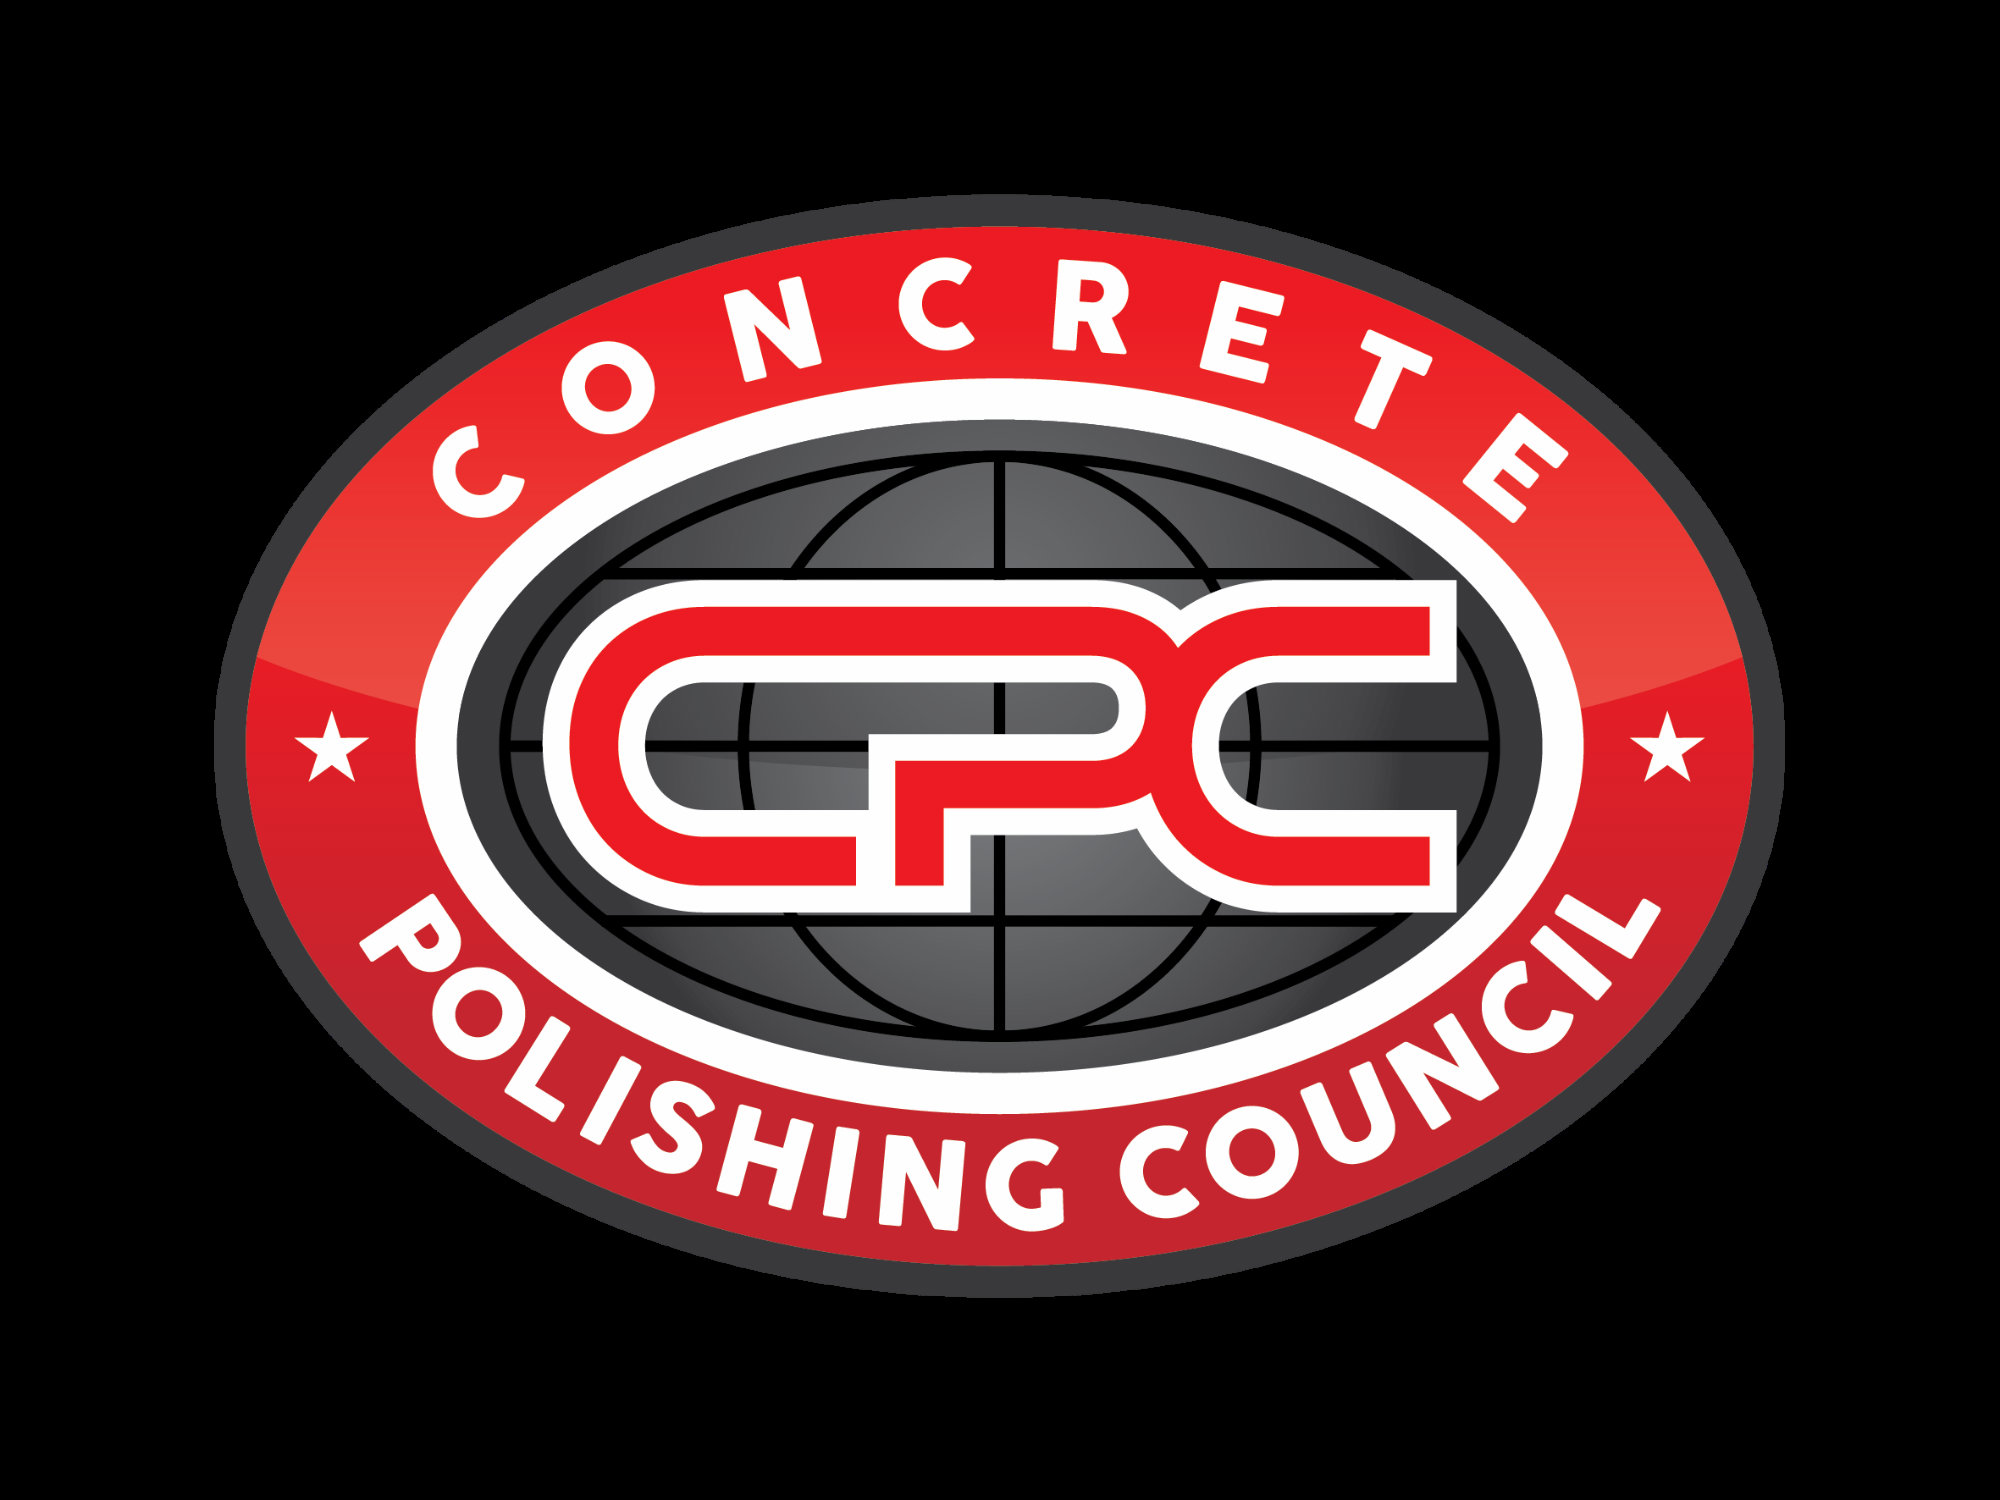 Concrete Polishing Council Of Ascc Revises Major Polishing